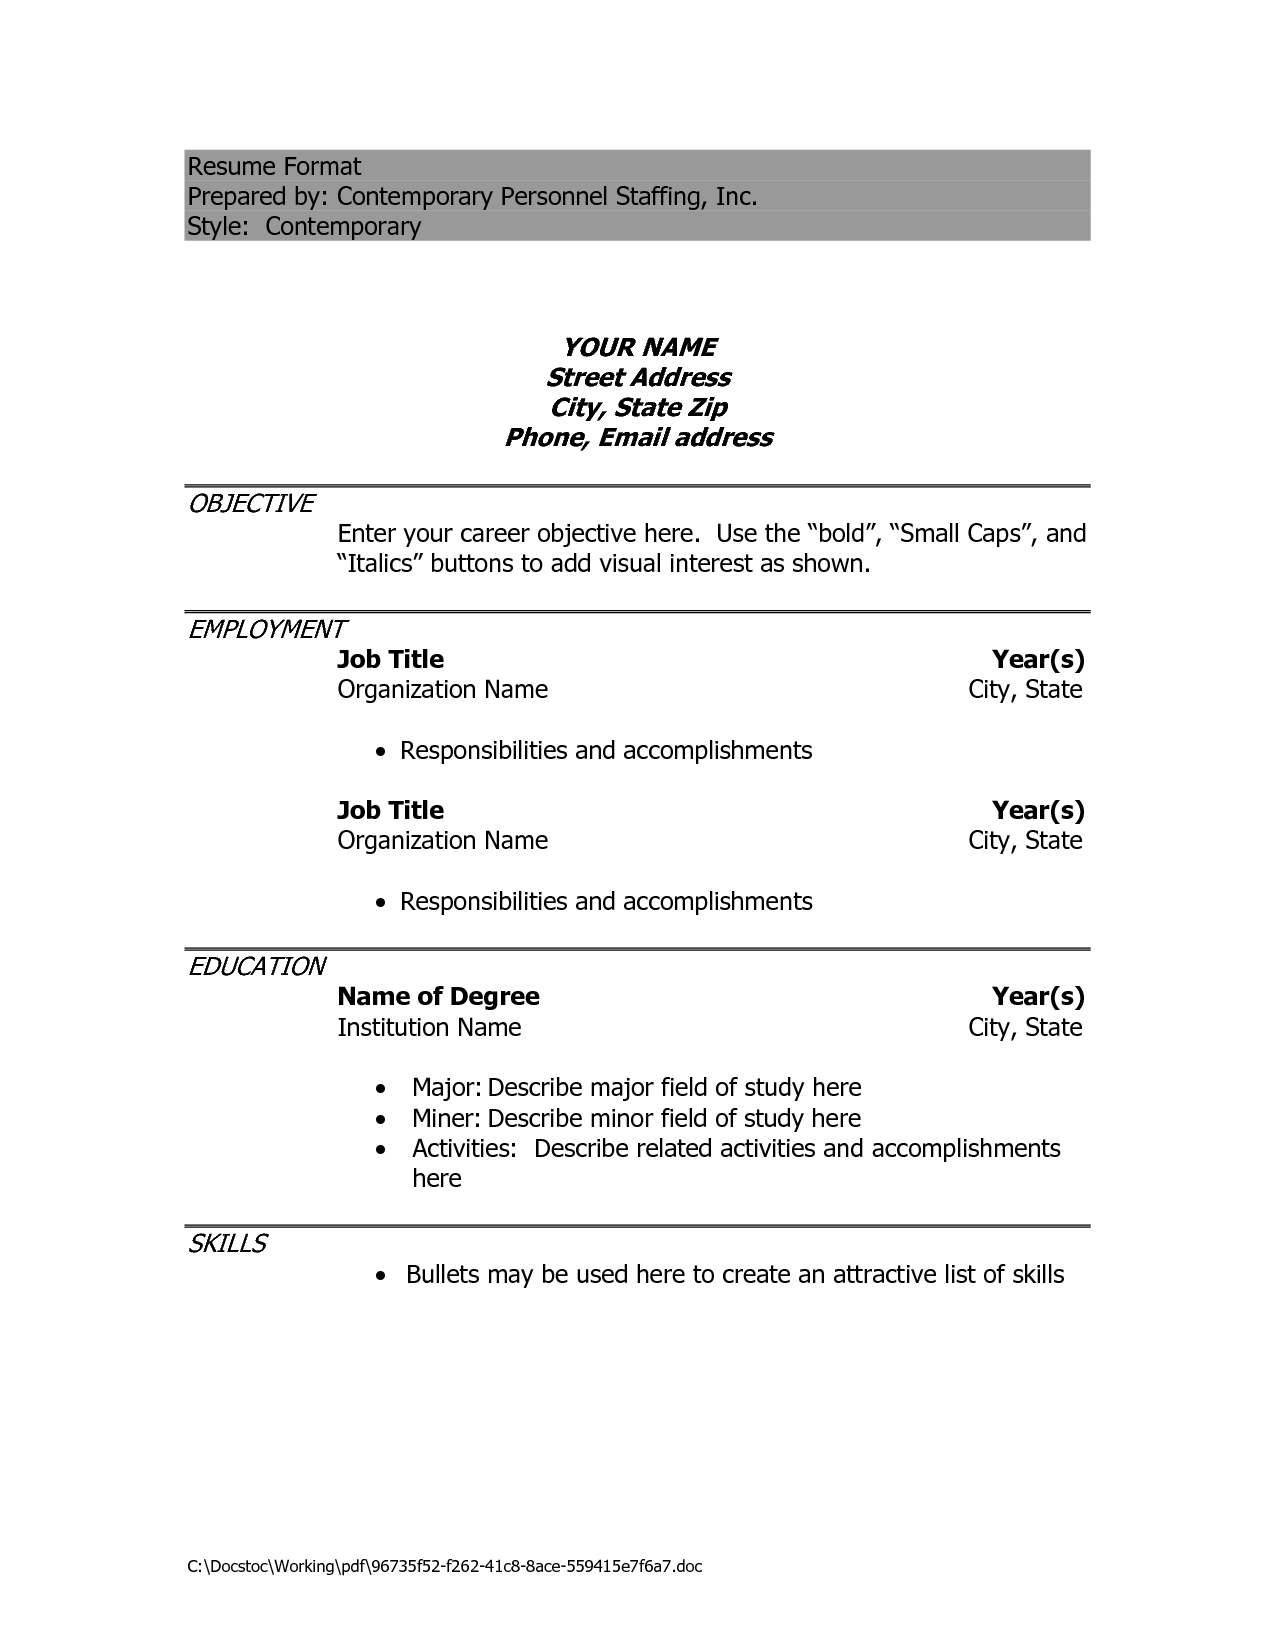 Resume Format For Teachers Doc File Best Of Profesional Cv Photos And Gallery Resume Template Word Resume Cover Letter For Resume